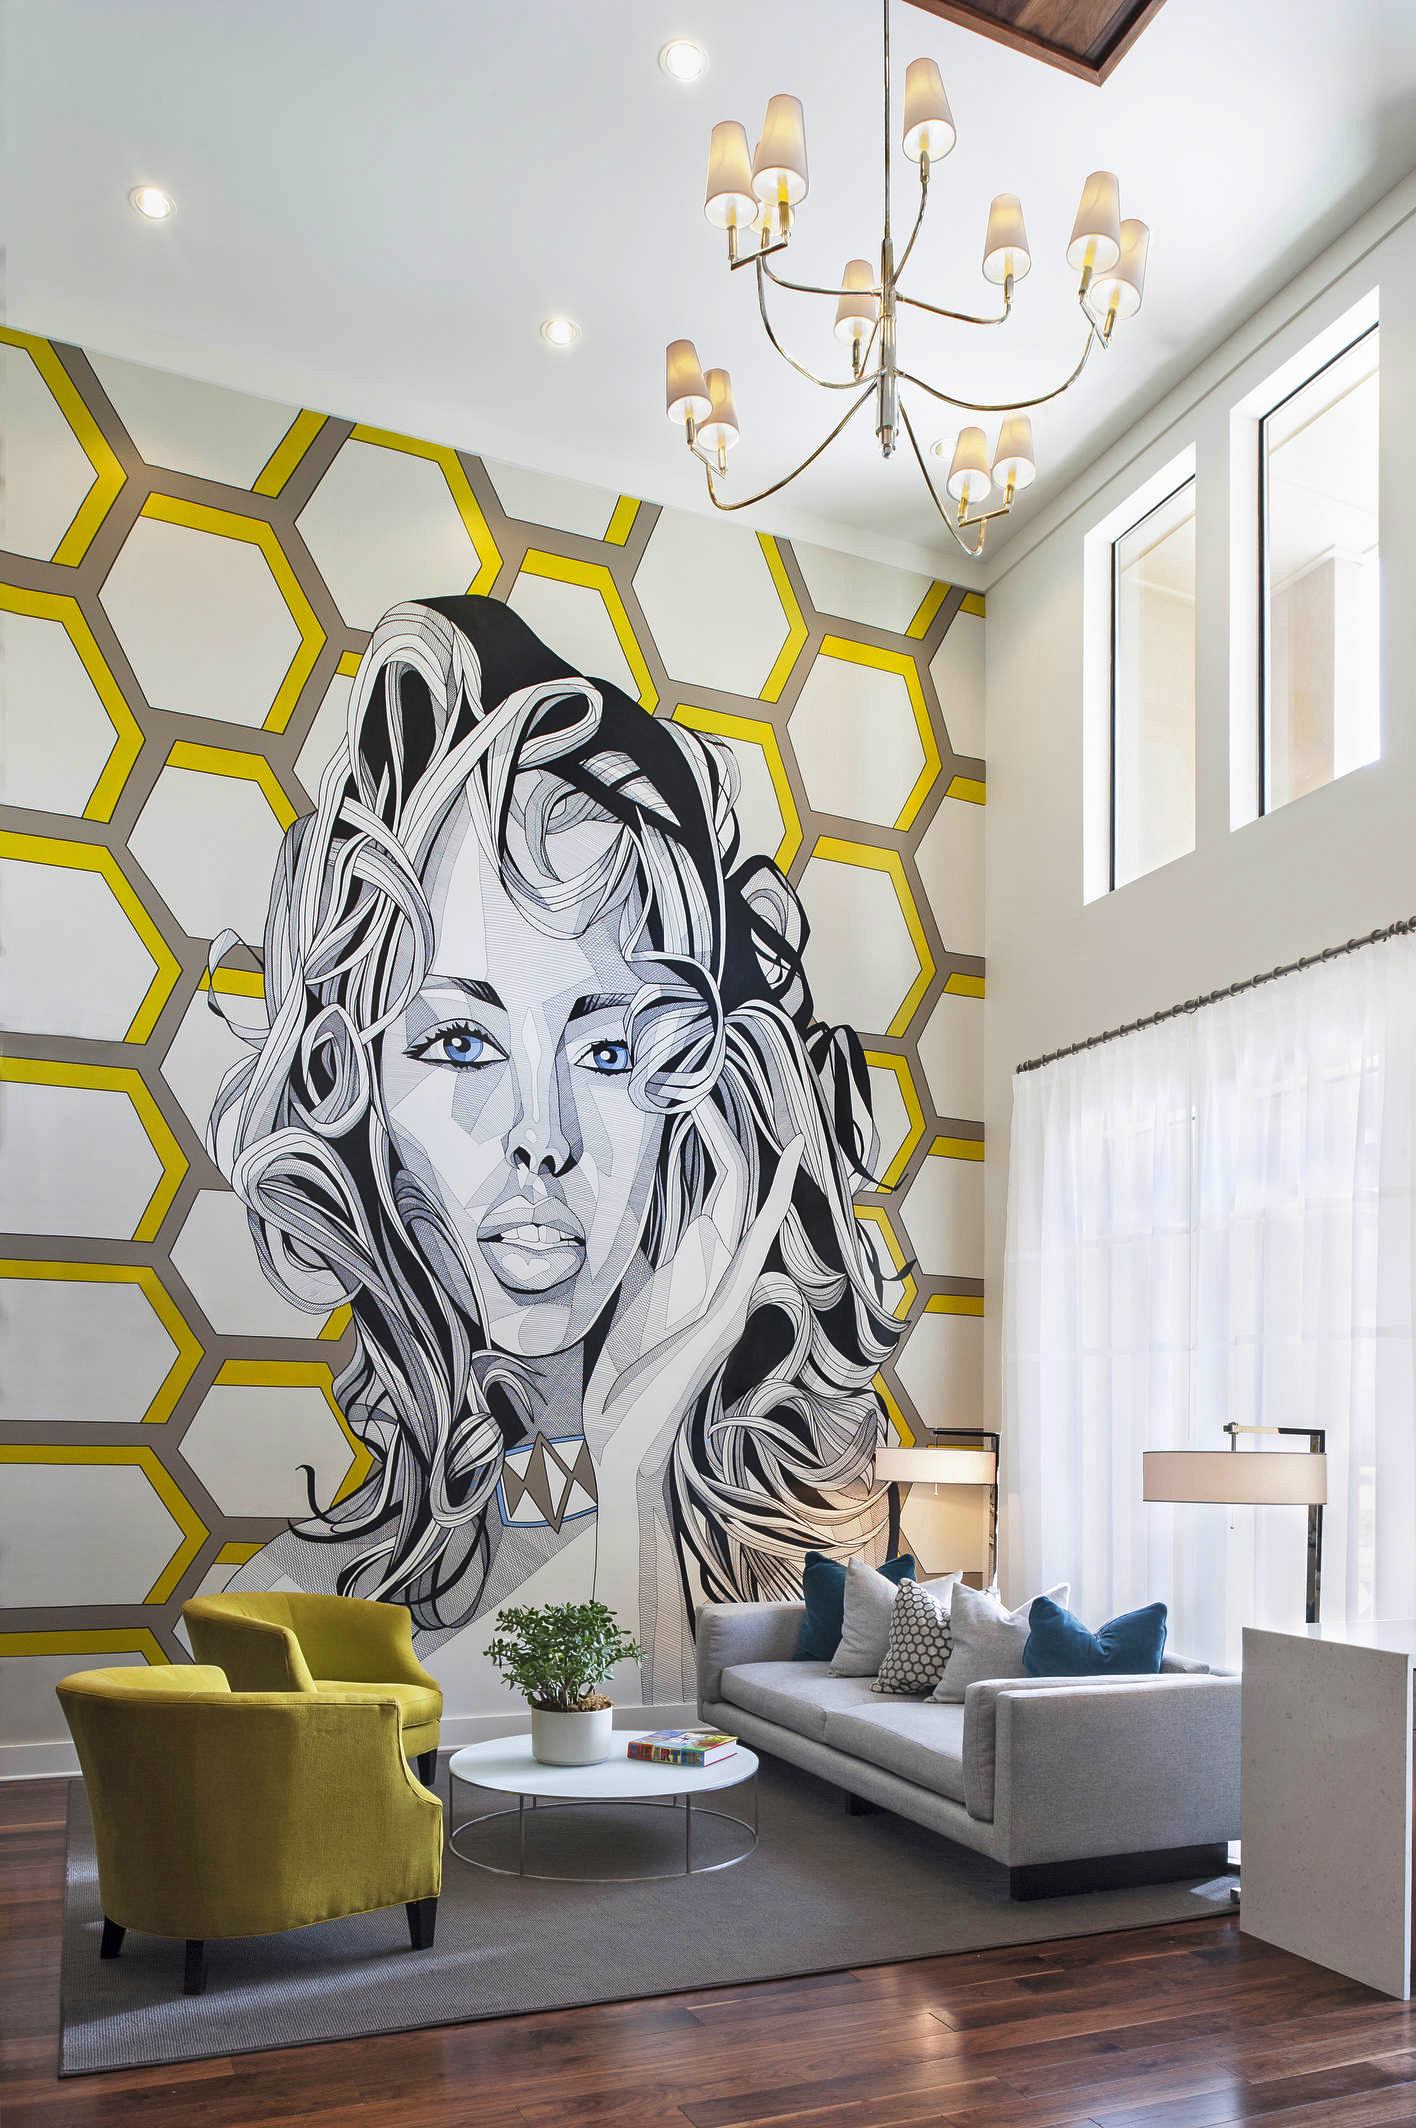 Images can jump right off the wall - Some of the decorative artists we commission are motivated by pop culture, have intense personalities, and gain the attention of our most amazing clients. The images can jump right off the wall or canvas with dreamlike proportion.